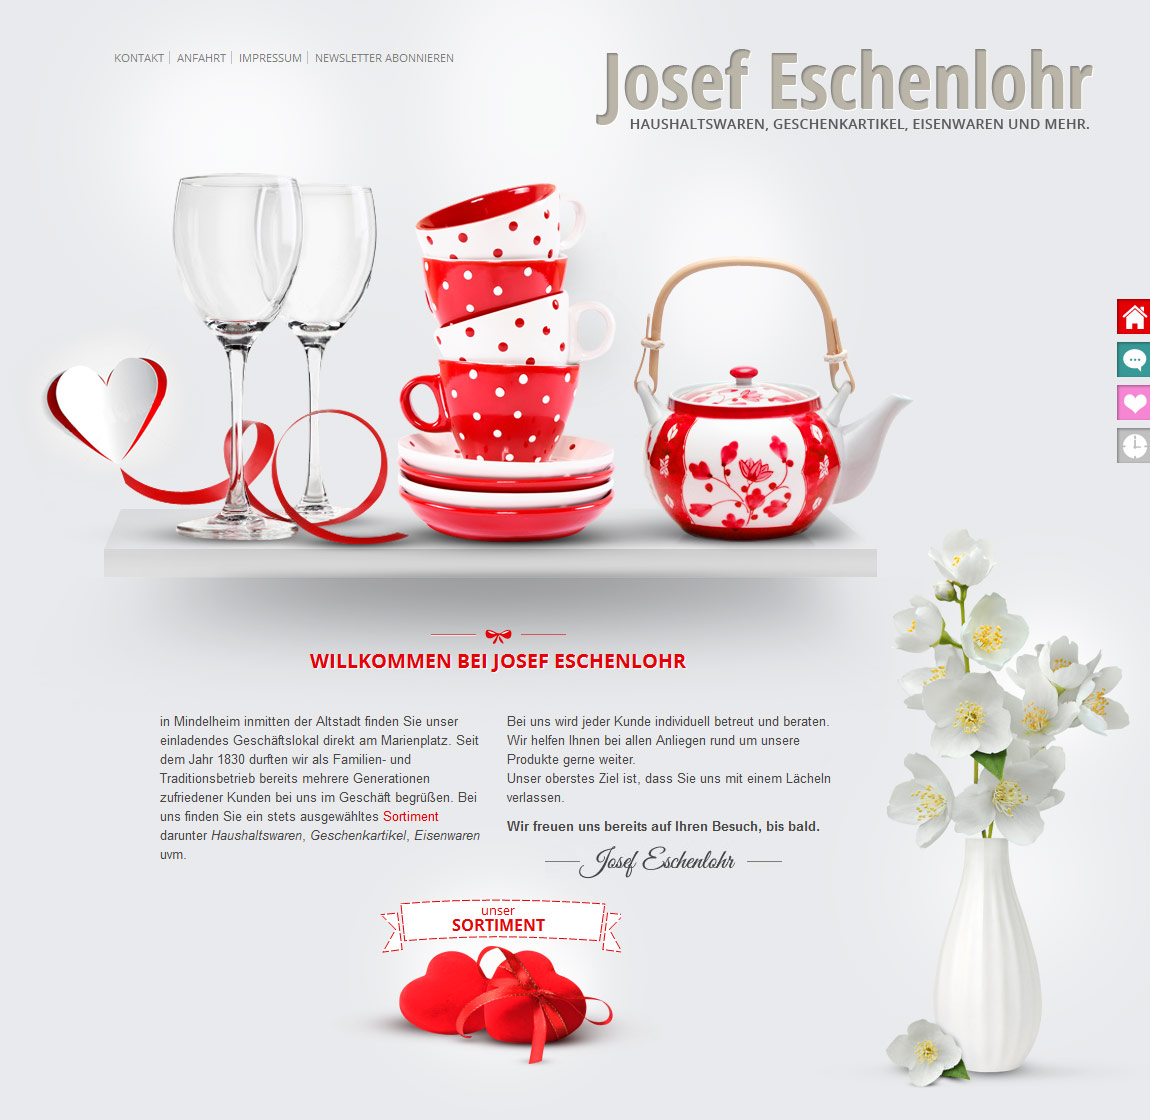 Josef Eschenlohr Website Screenshot